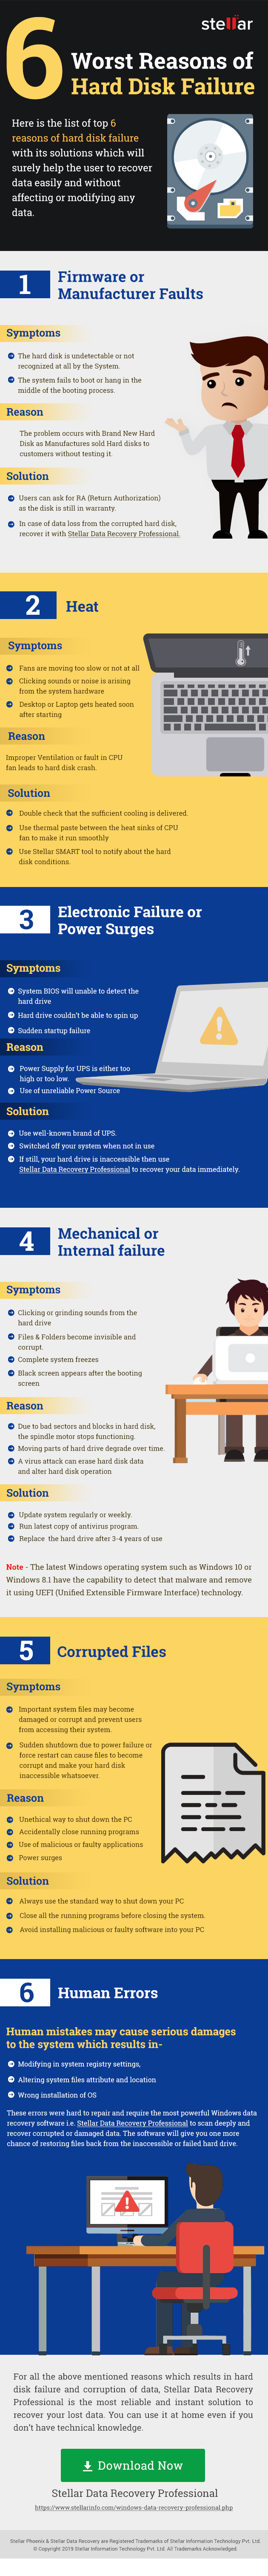 infographics - 6 worst reasons for hard drive failure